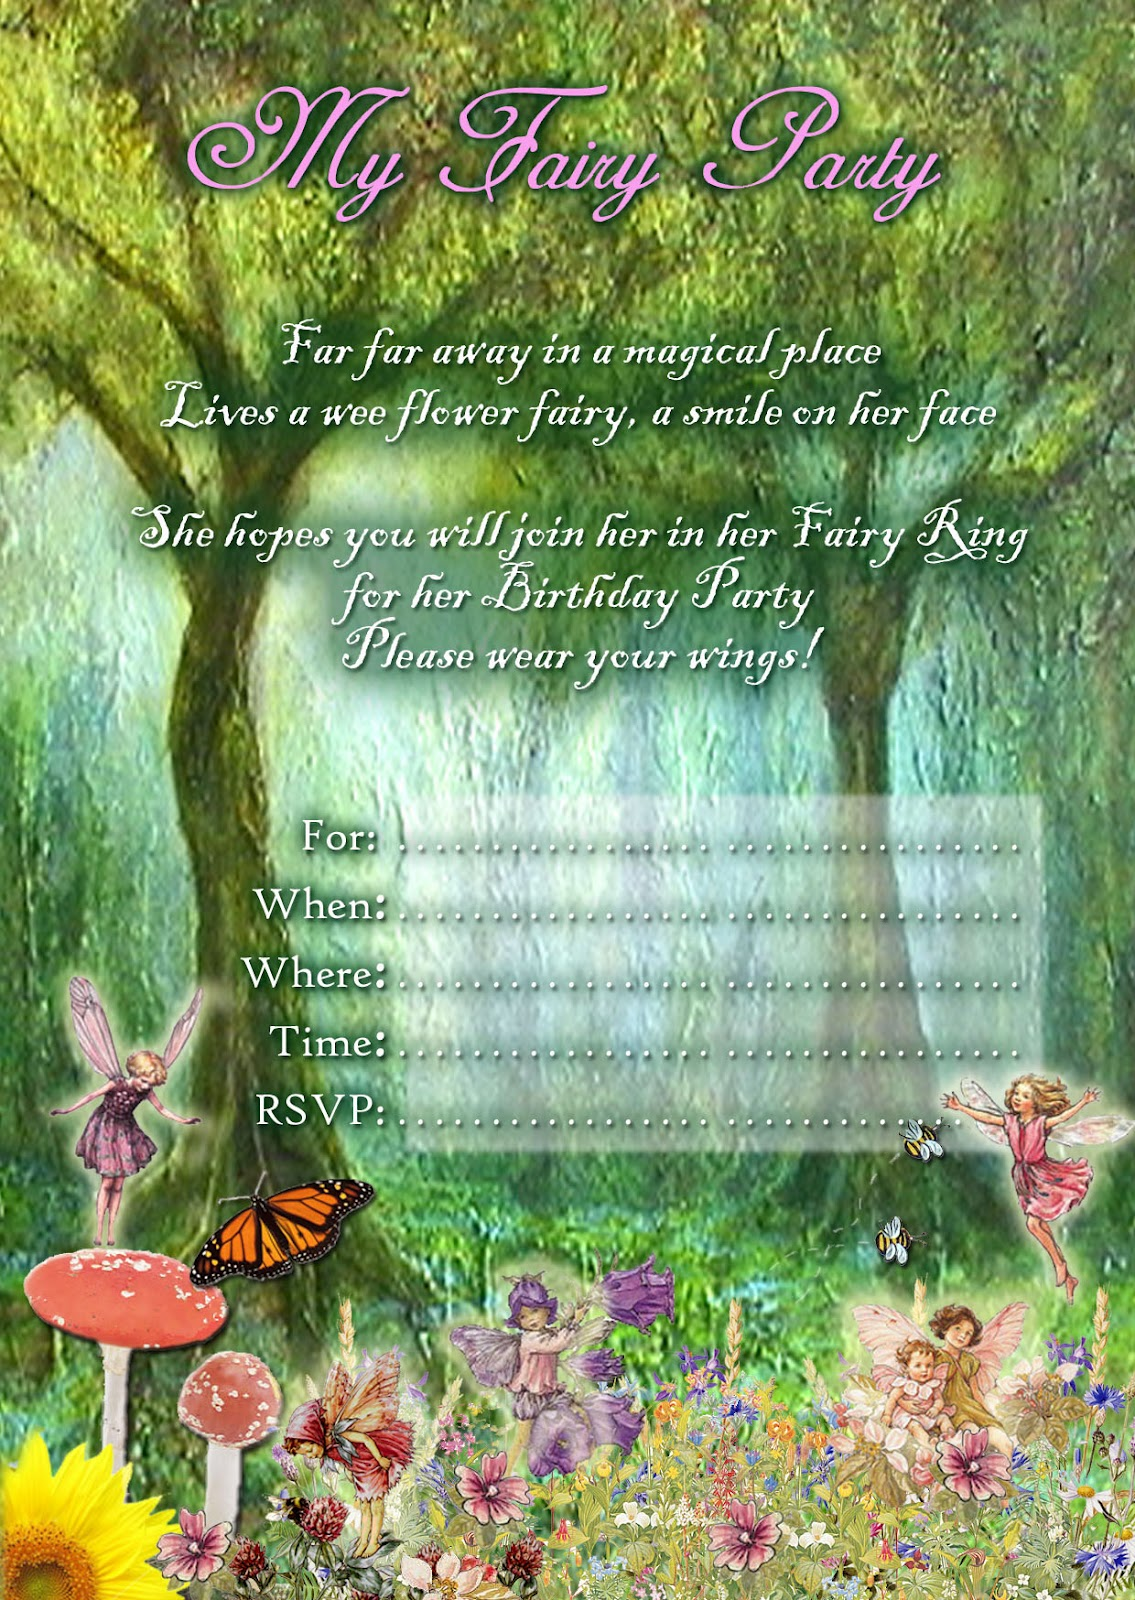 Hunger Games Party Invitations was beautiful invitations sample